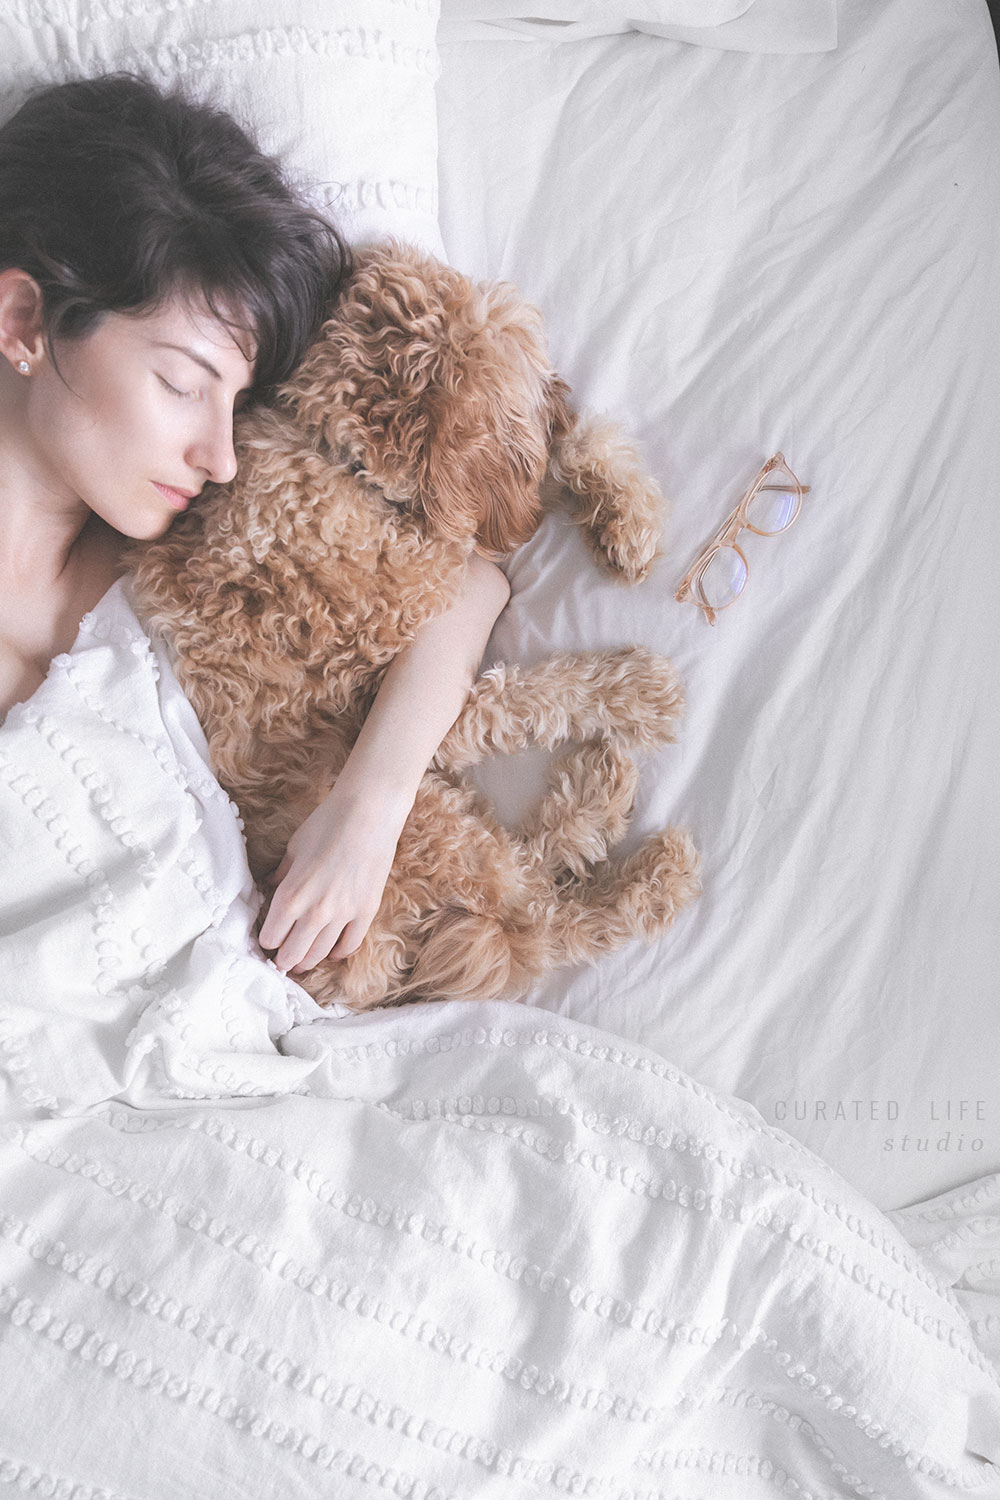 Birds-eye view of a brunette woman sleeping, cuddling a tan caboodle in bed, surrounded by white linen bedsheets,